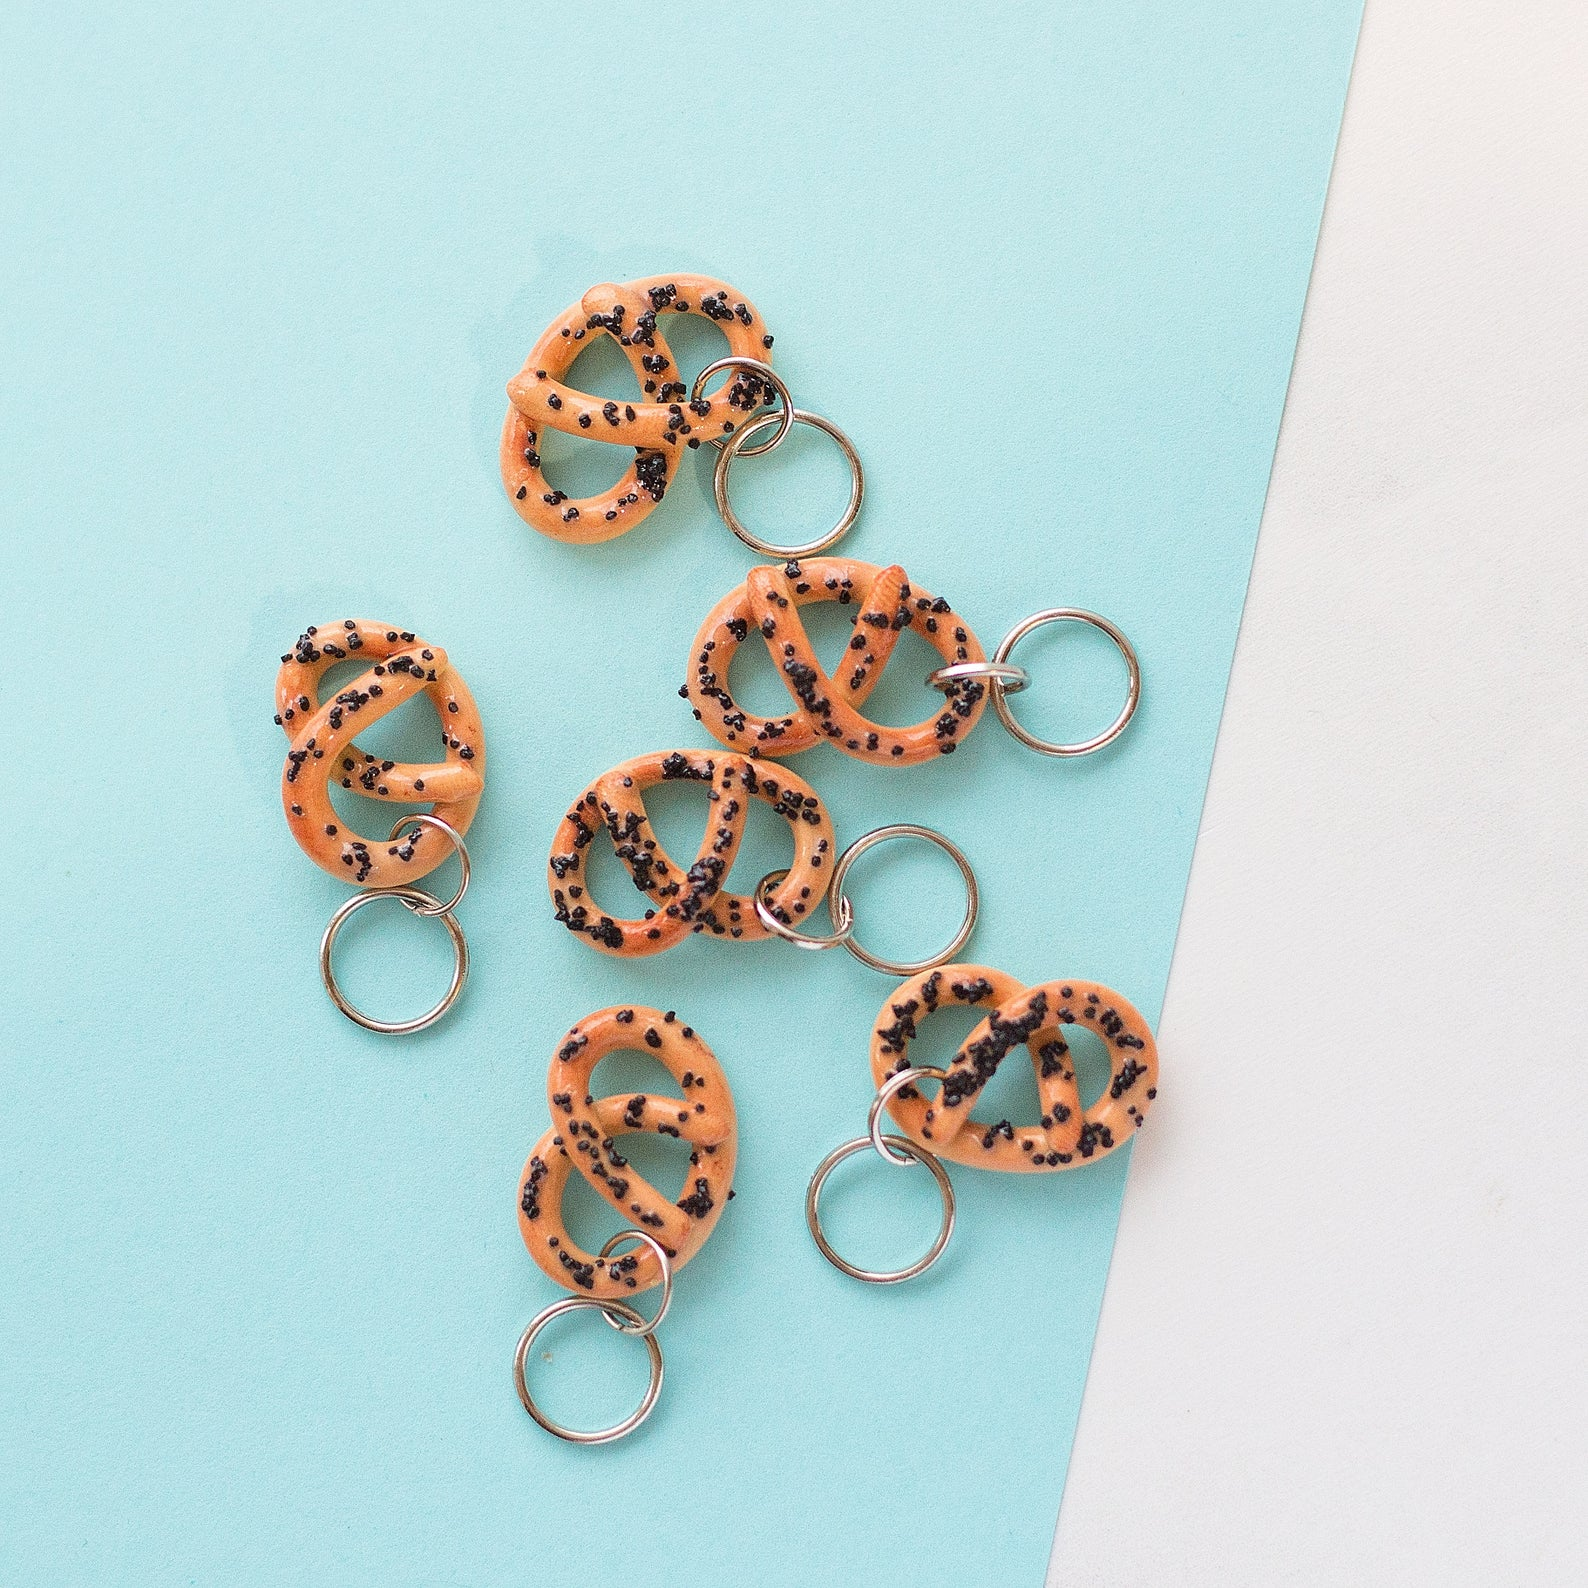 Cute Pretzel Stitch Markers for your Knitting